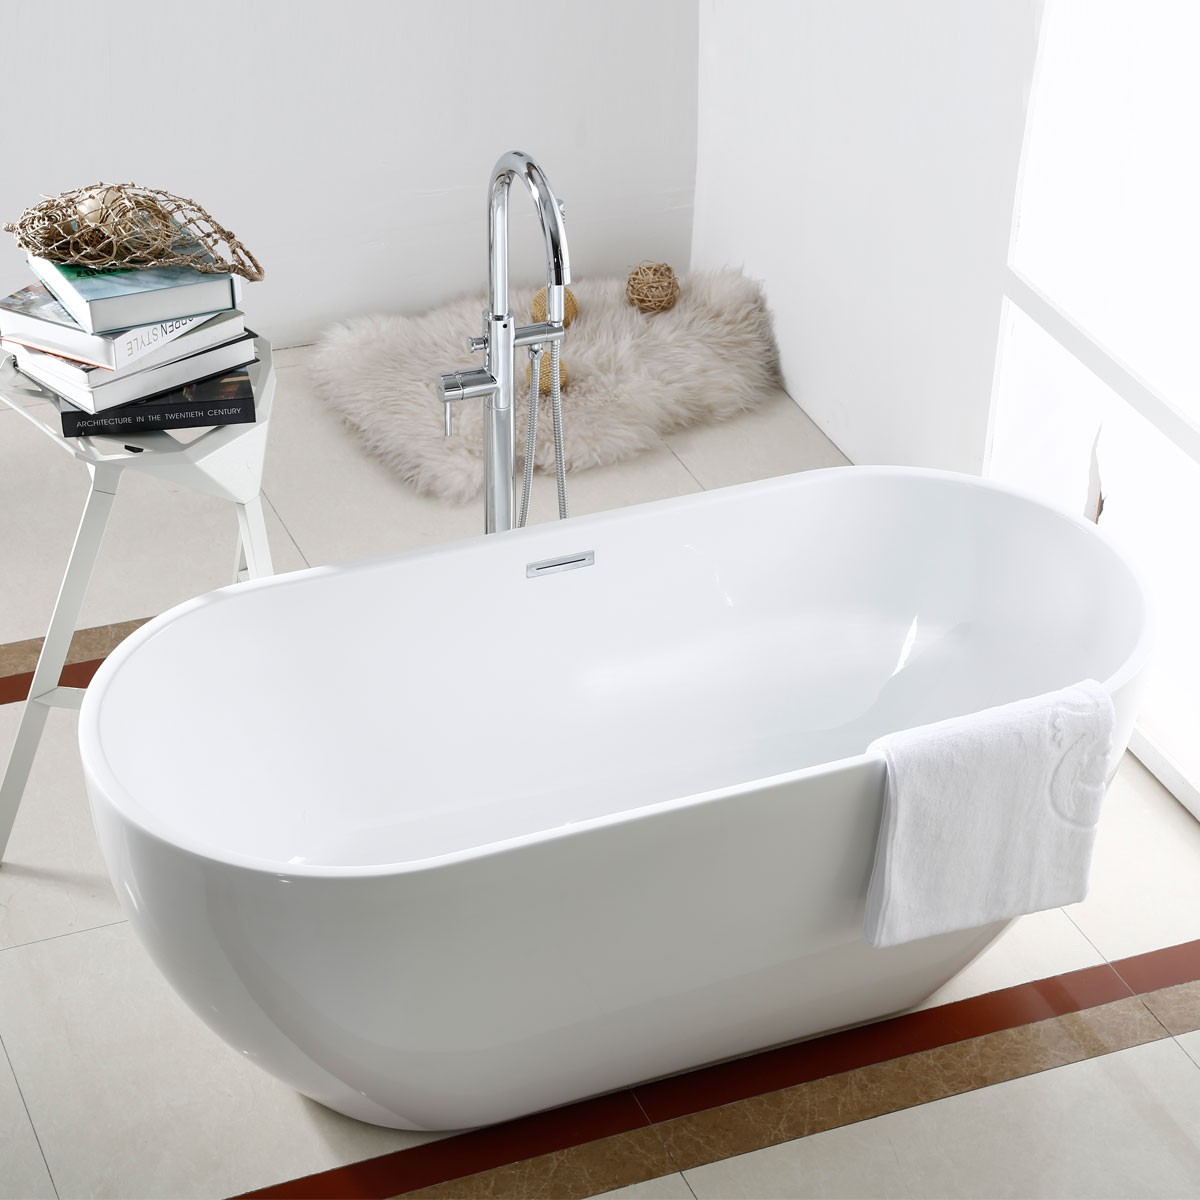 65 In Seamless Freestanding Bathtub - Acrylic Pure White (DK-PW-11672)